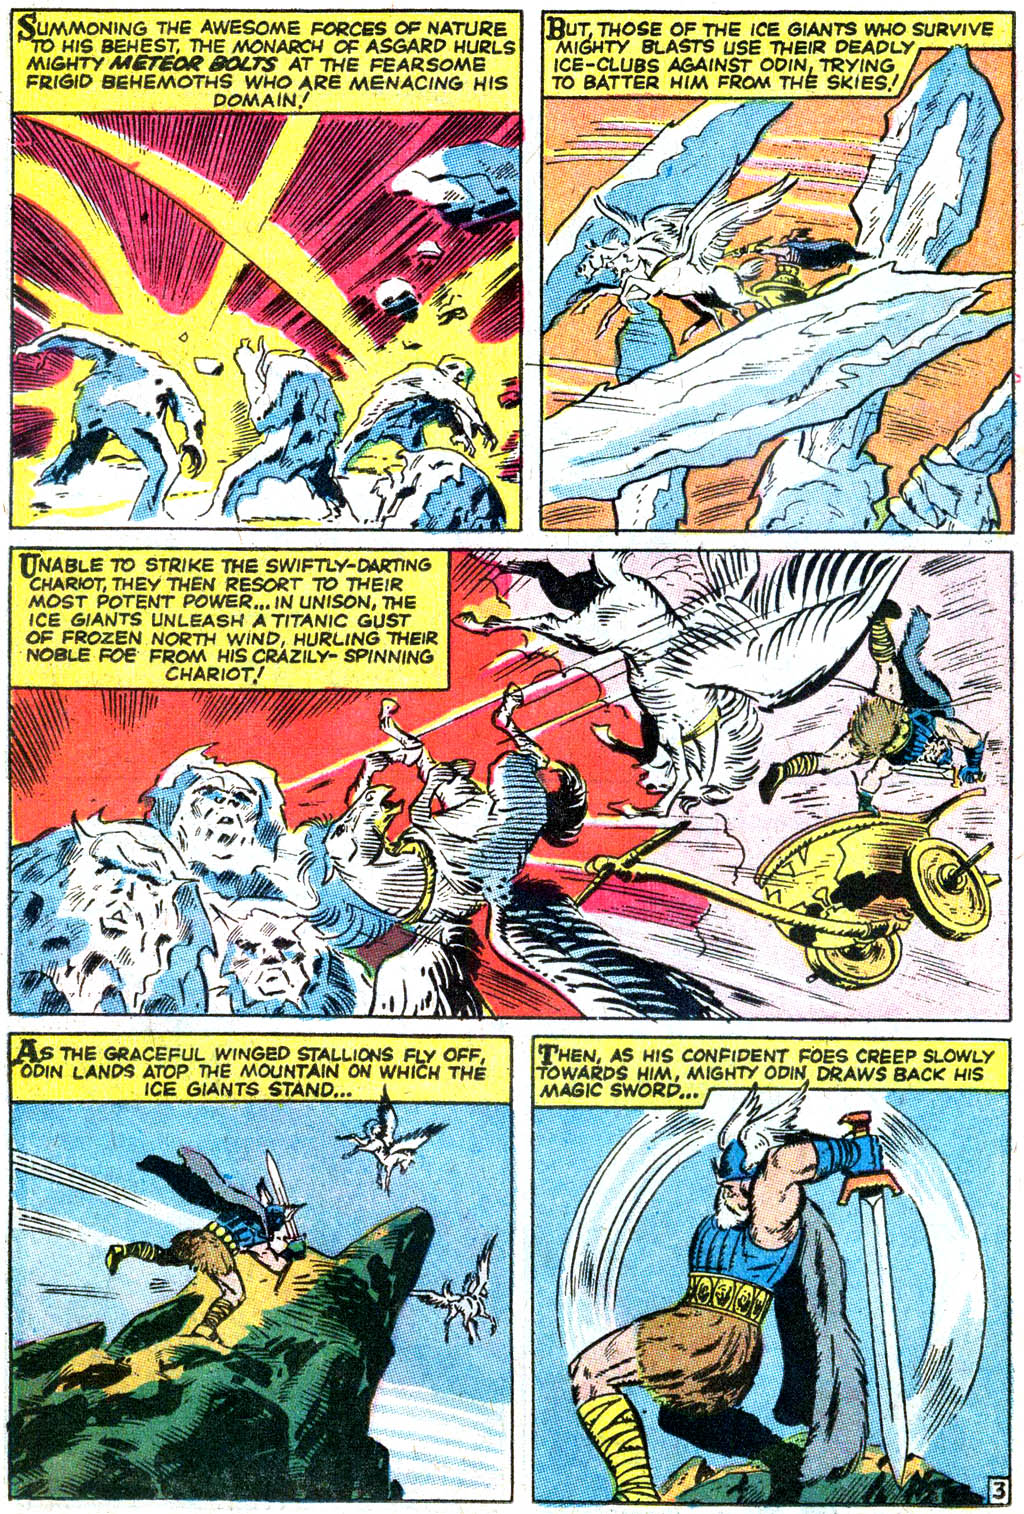 Read Online Tales Of Asgard 1968 Comic Issue Full